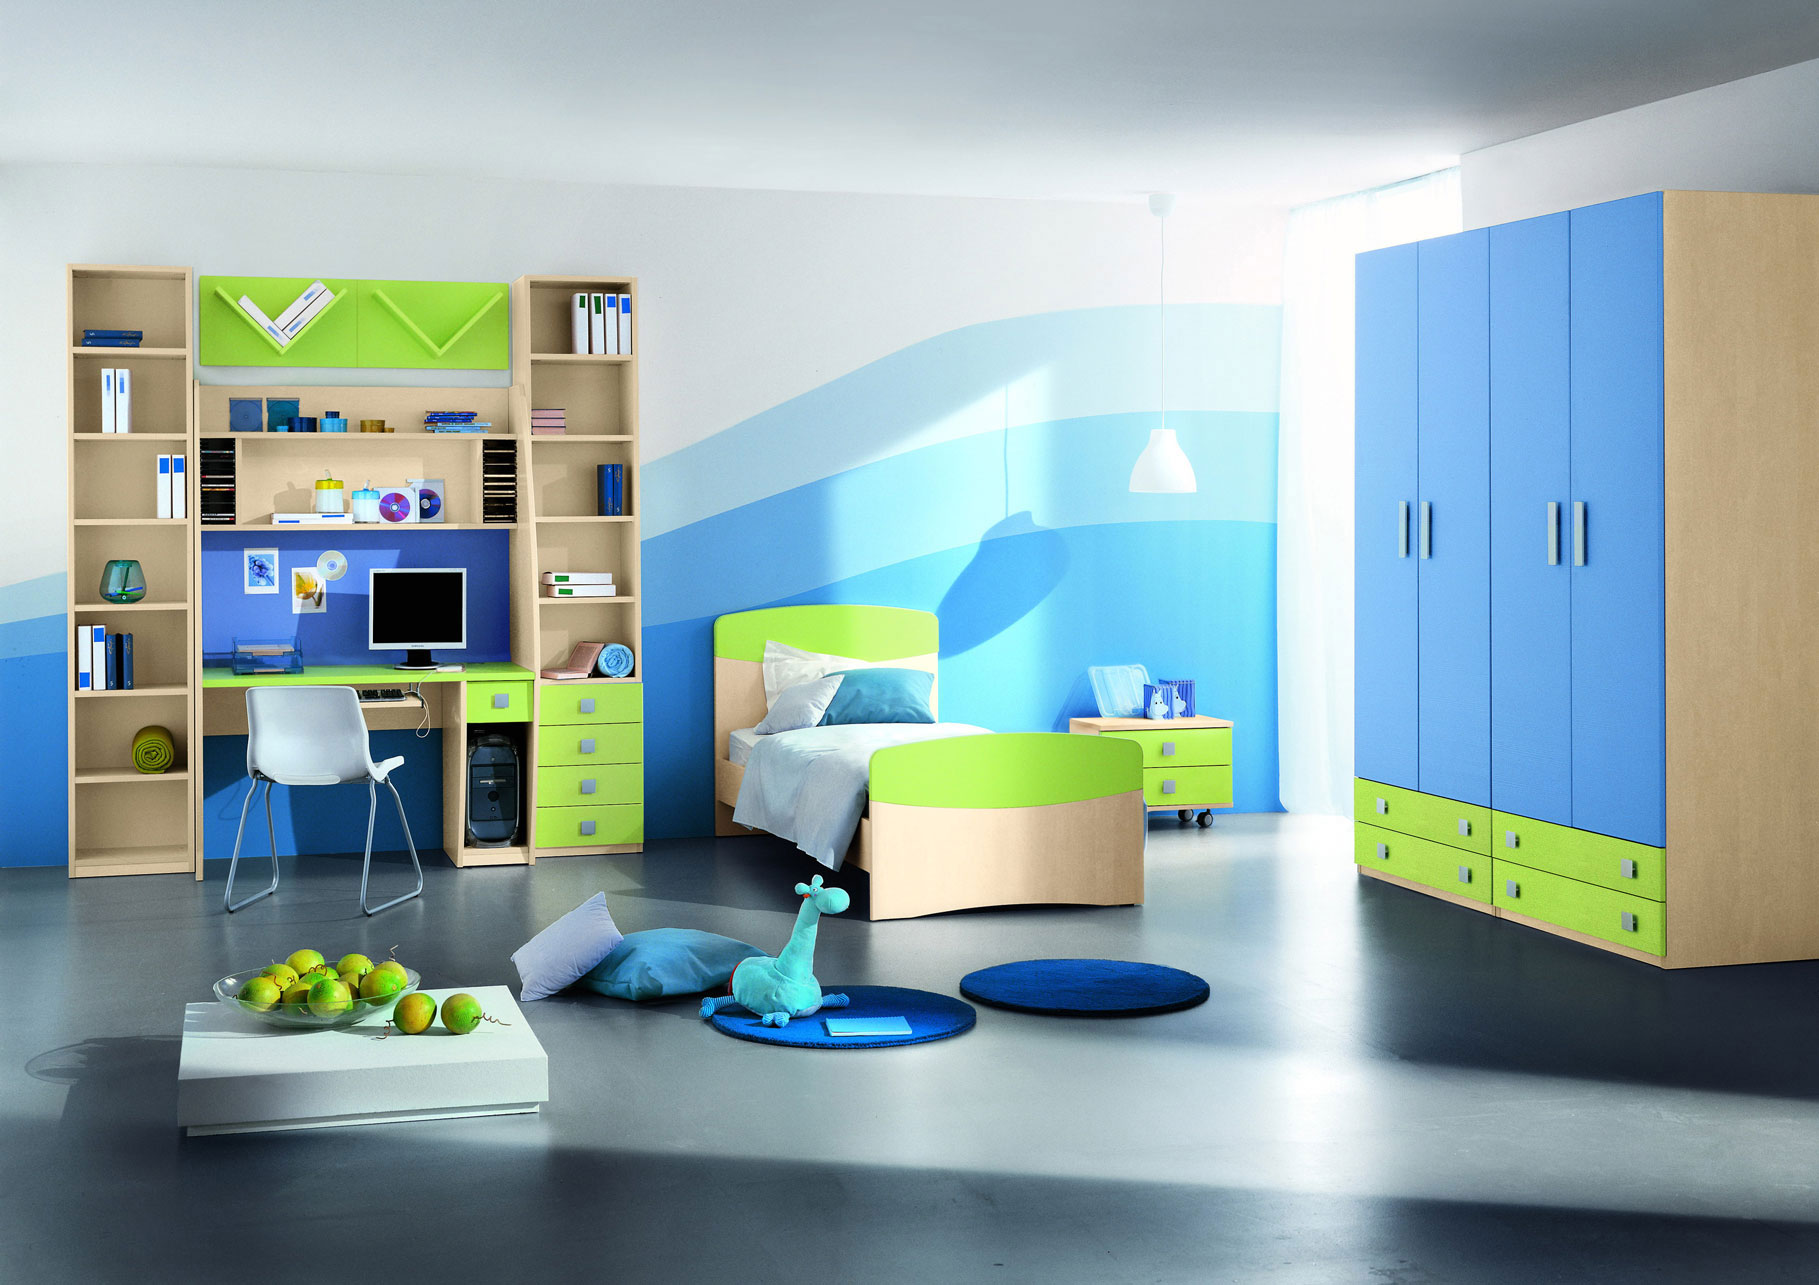 Remarkable Kids Bedroom Ideas Blue Room 1819 x 1285 · 287 kB · jpeg